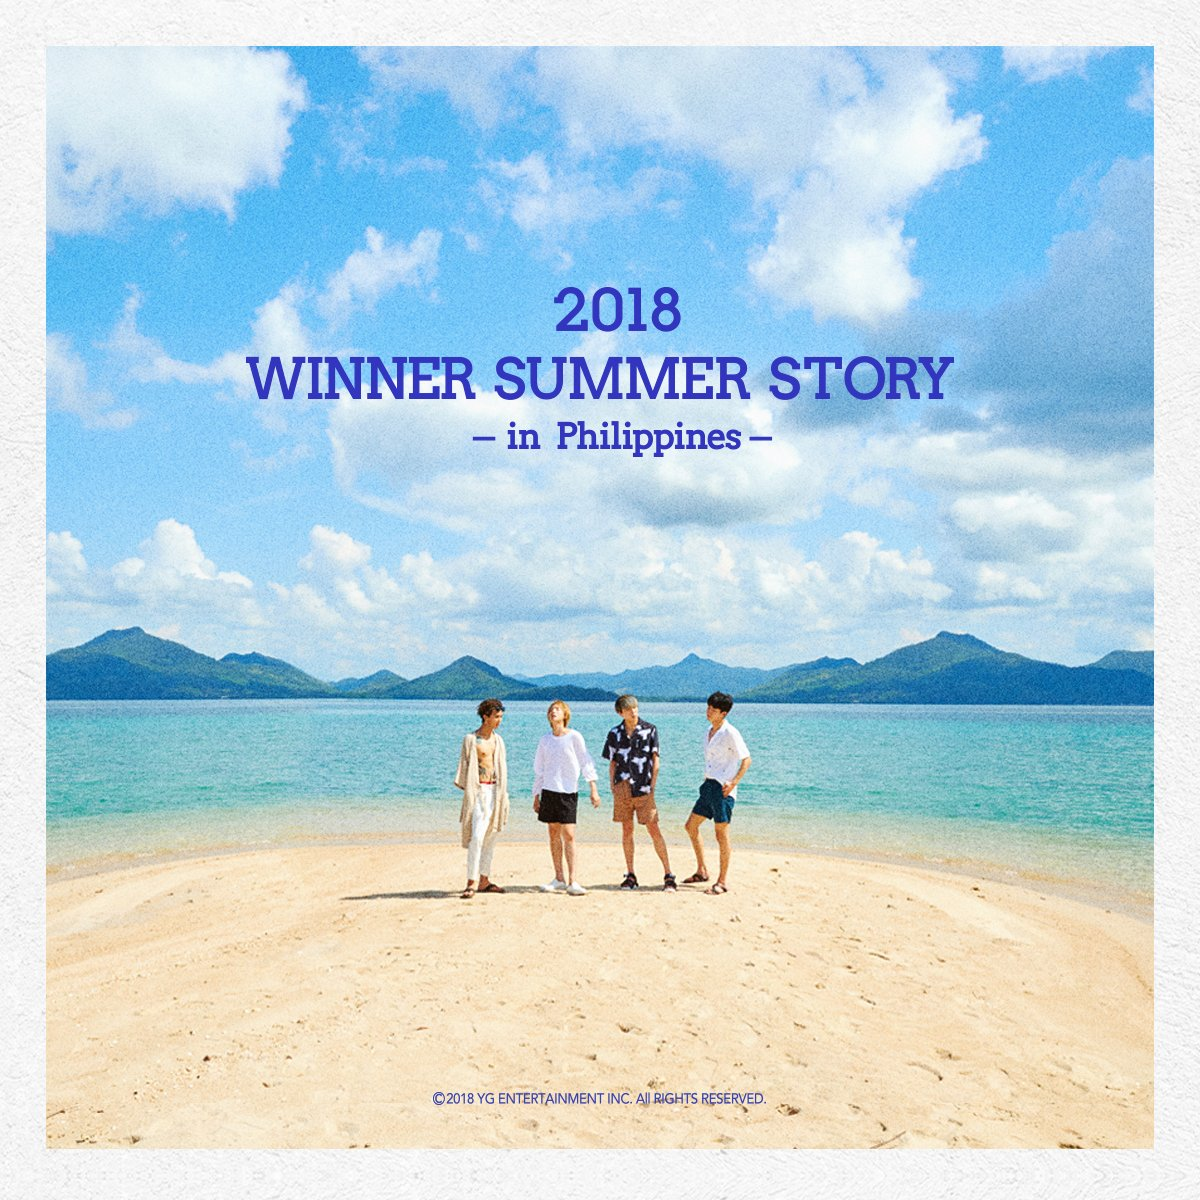 WINNER '2018 WINNER'S SUMMER STORY IN PHILIPPINES'